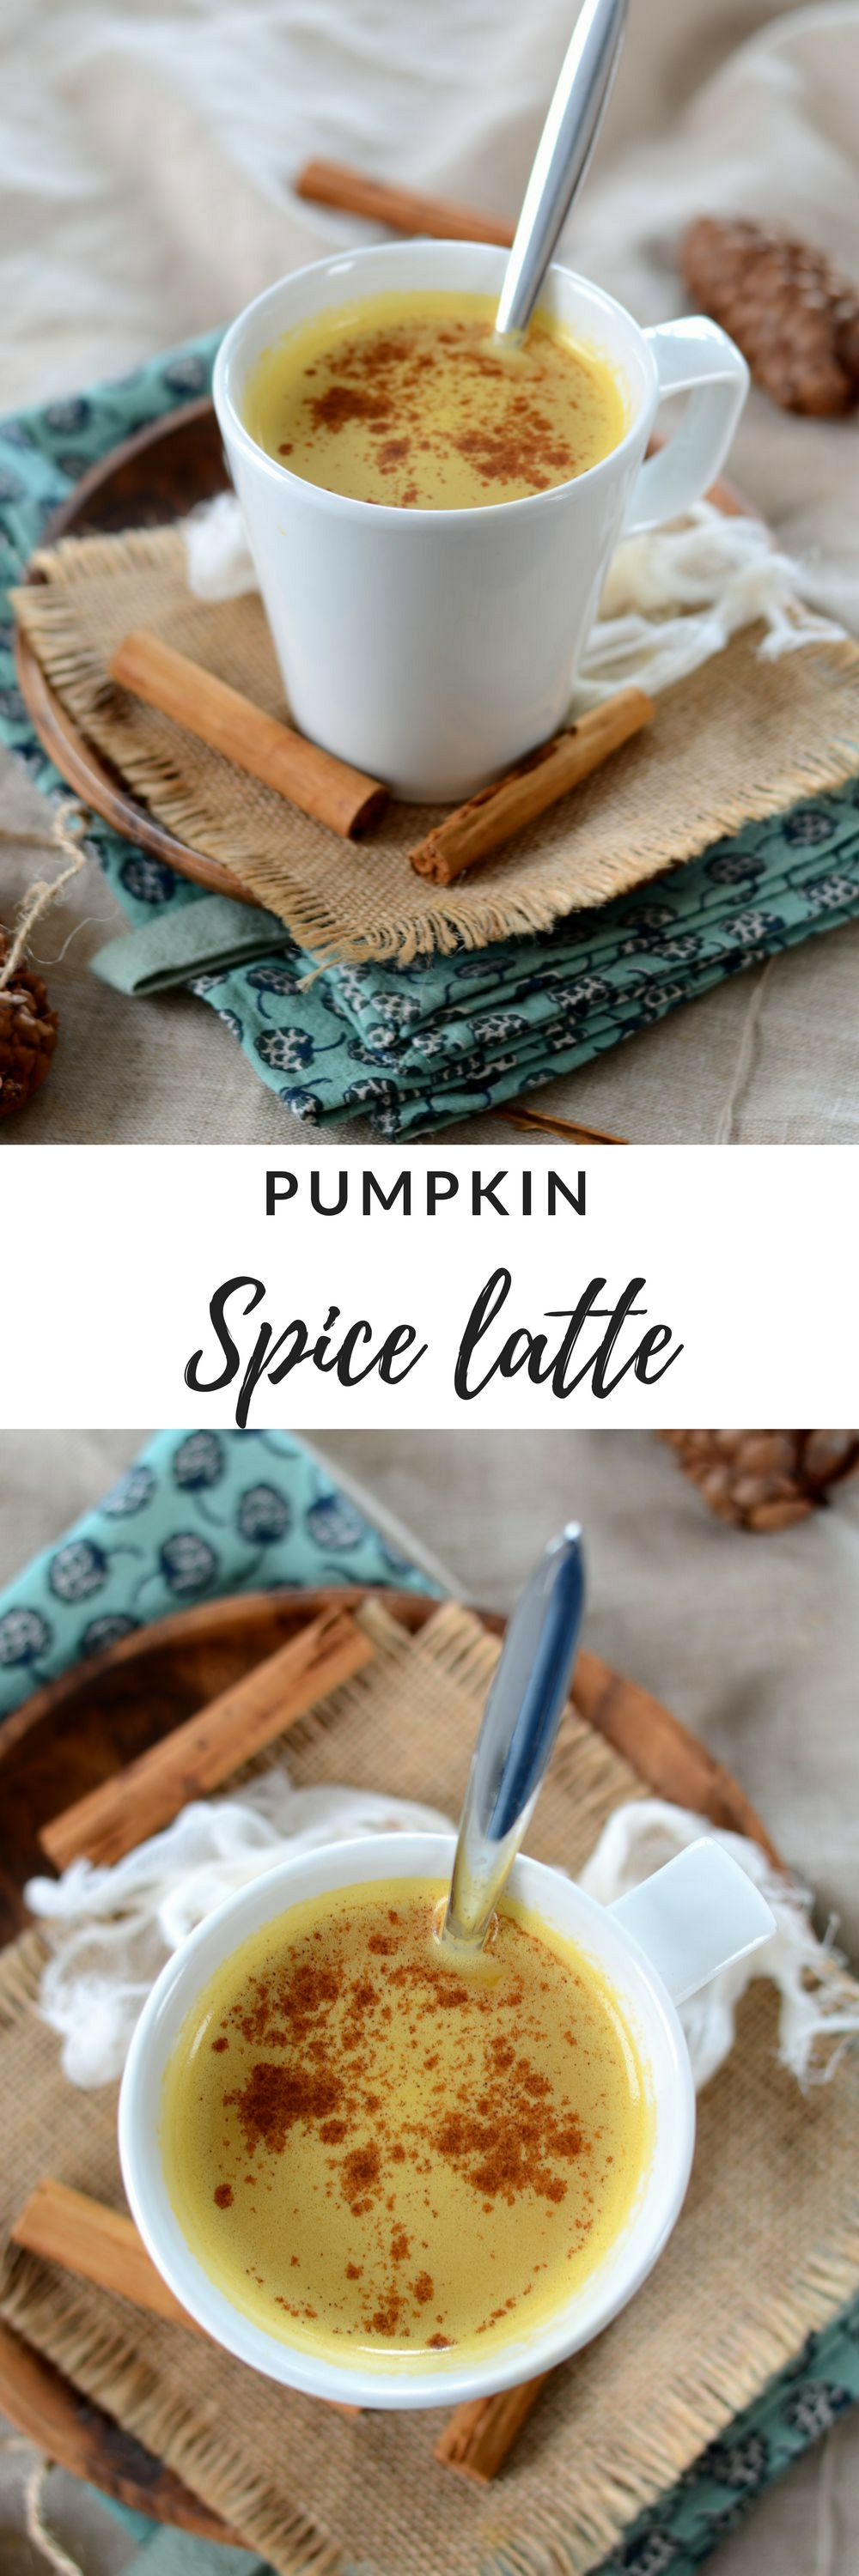 caf latt la courge et aux pices pumpkin spice latte vegan recette tangerine zest. Black Bedroom Furniture Sets. Home Design Ideas